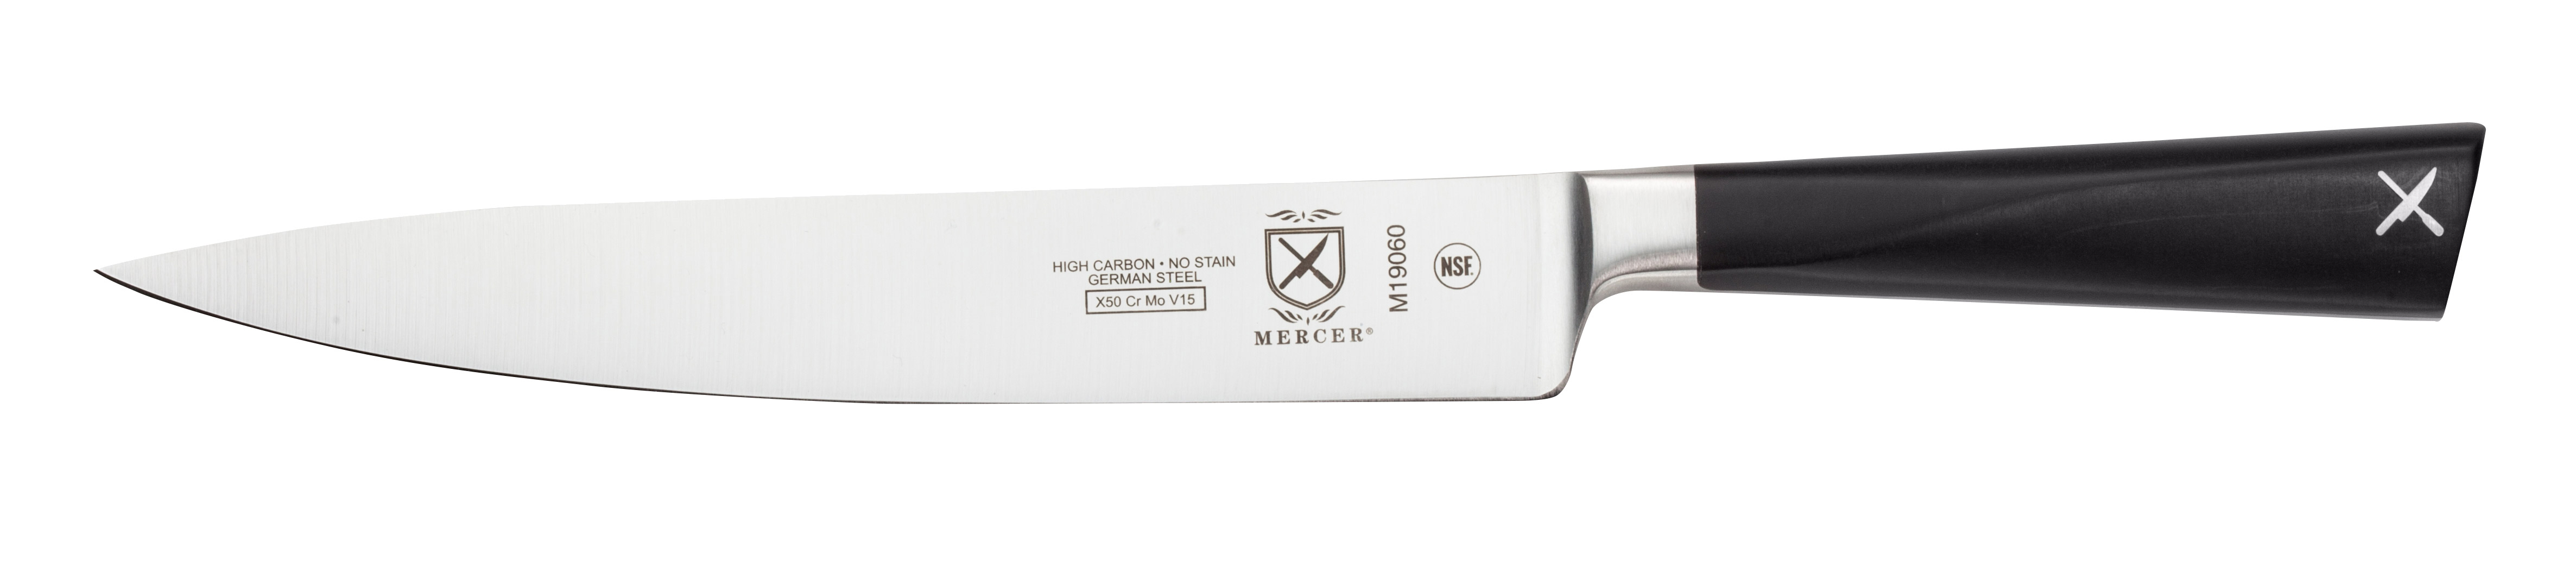 Mercer Culinary M19060 knife, carving